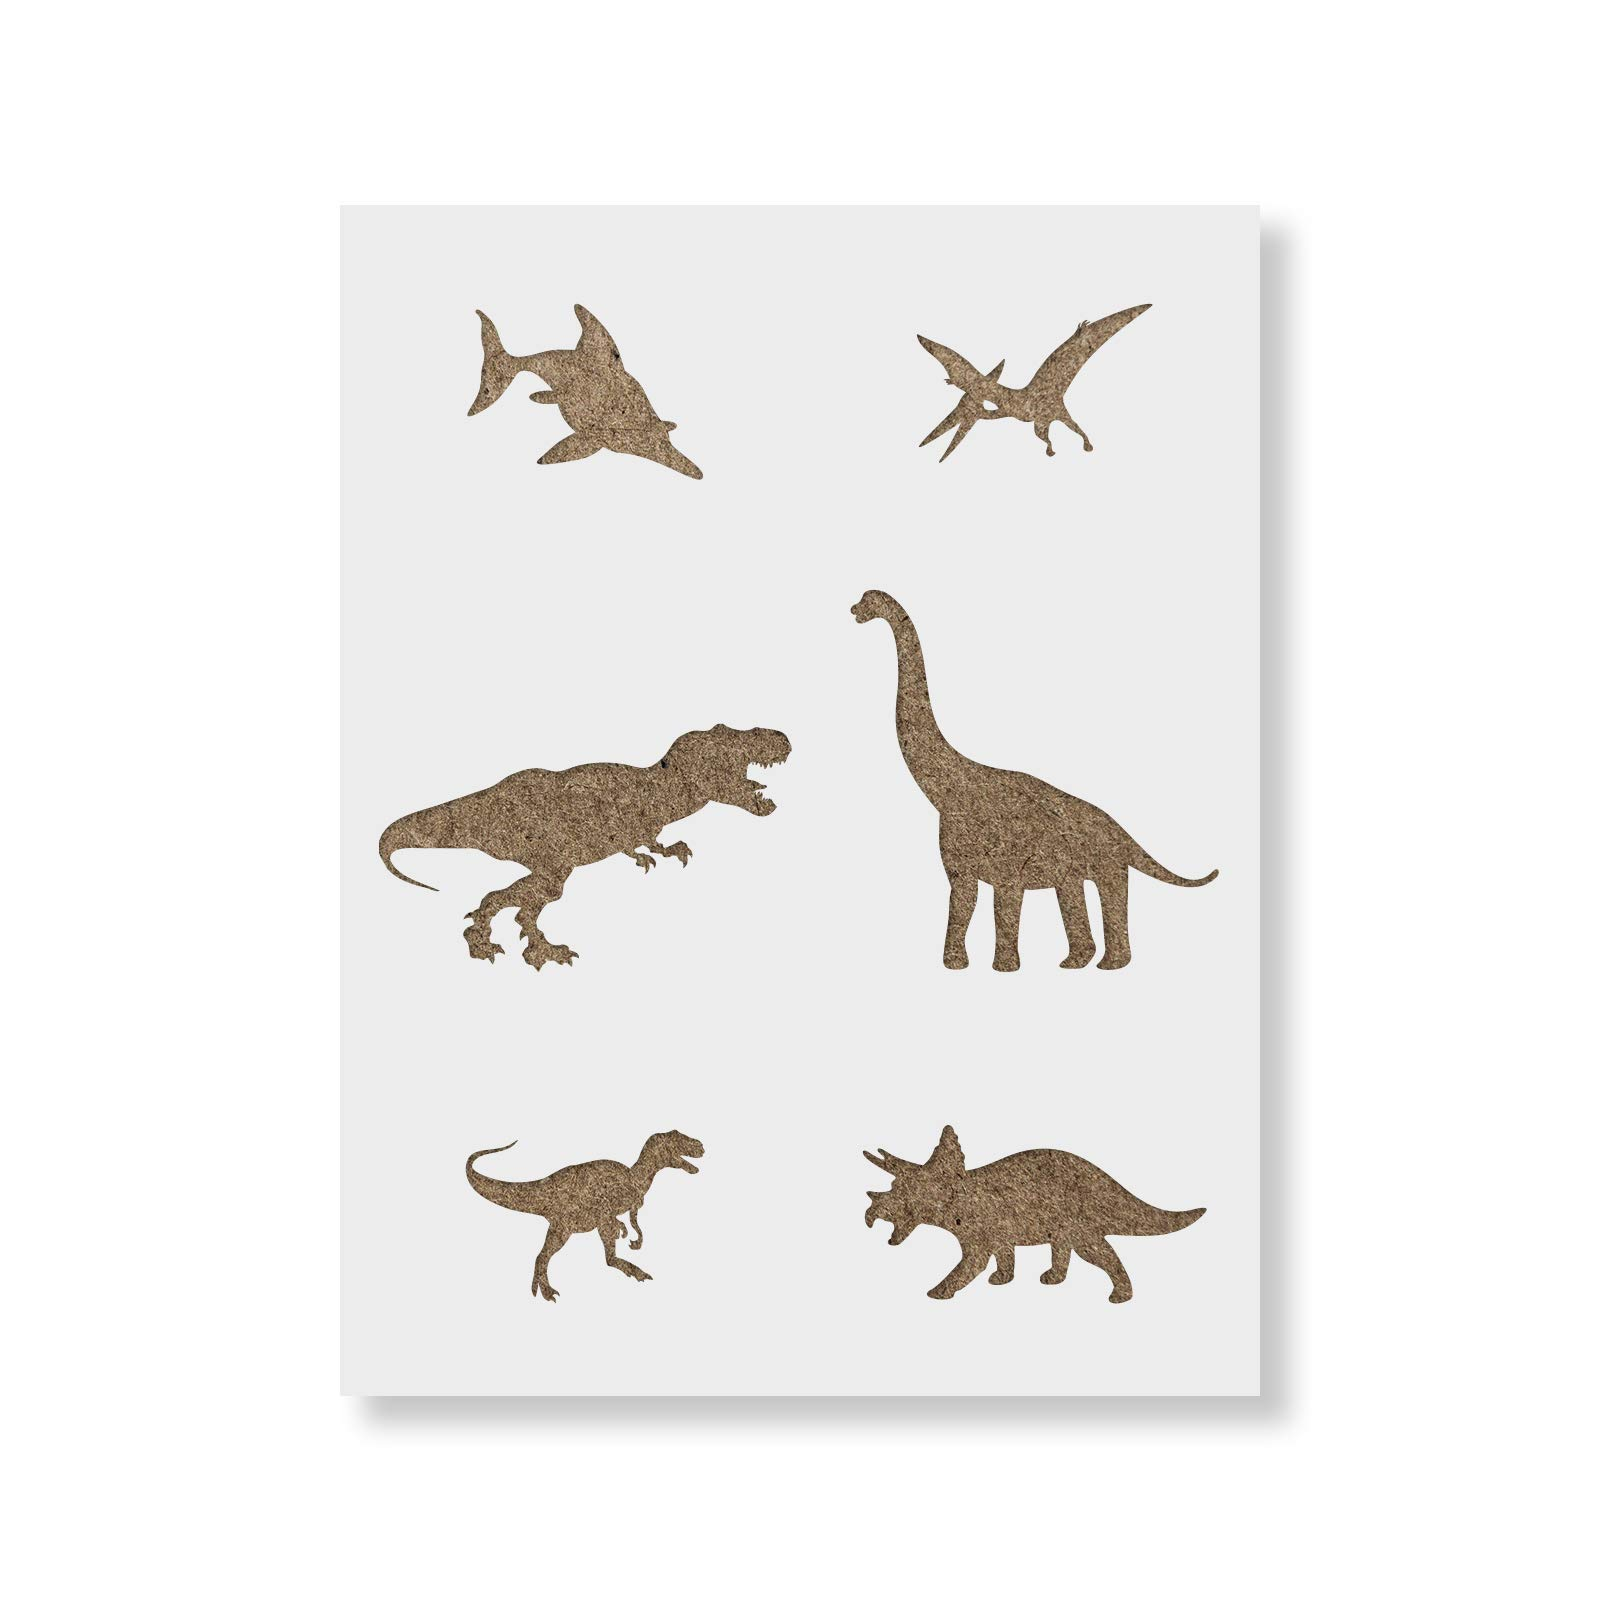 Dinosaurs Stencil for Walls and Crafts - Reusable Stencils of a Dinosaur for Painting in Small & Large Sizes - Made in USA